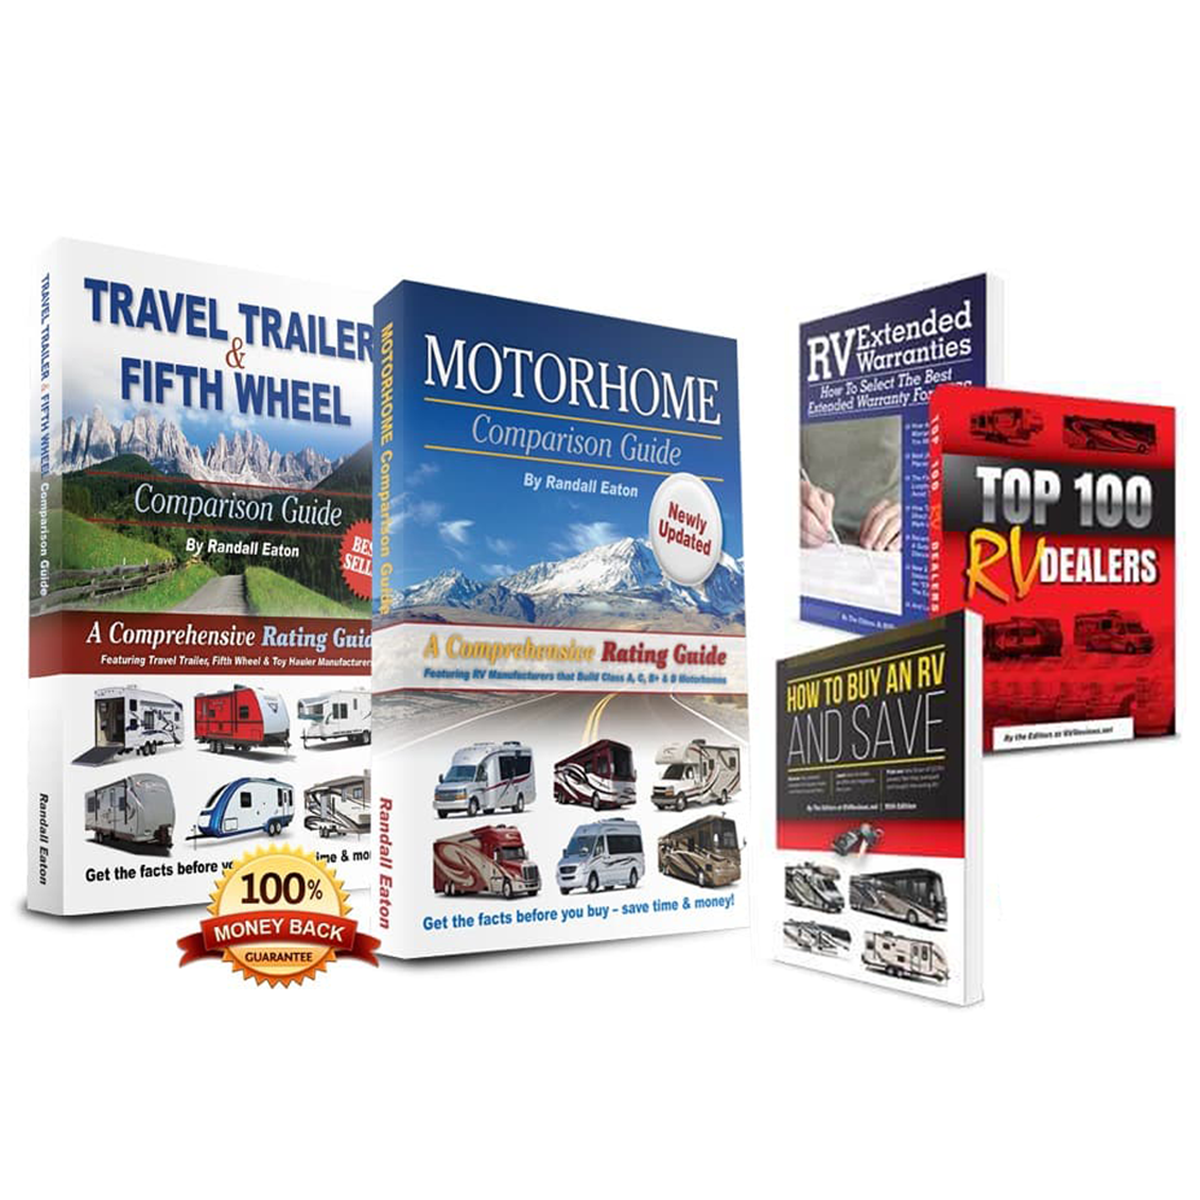 Travel trailer guide, motorhome guide, and the three bonus offer books